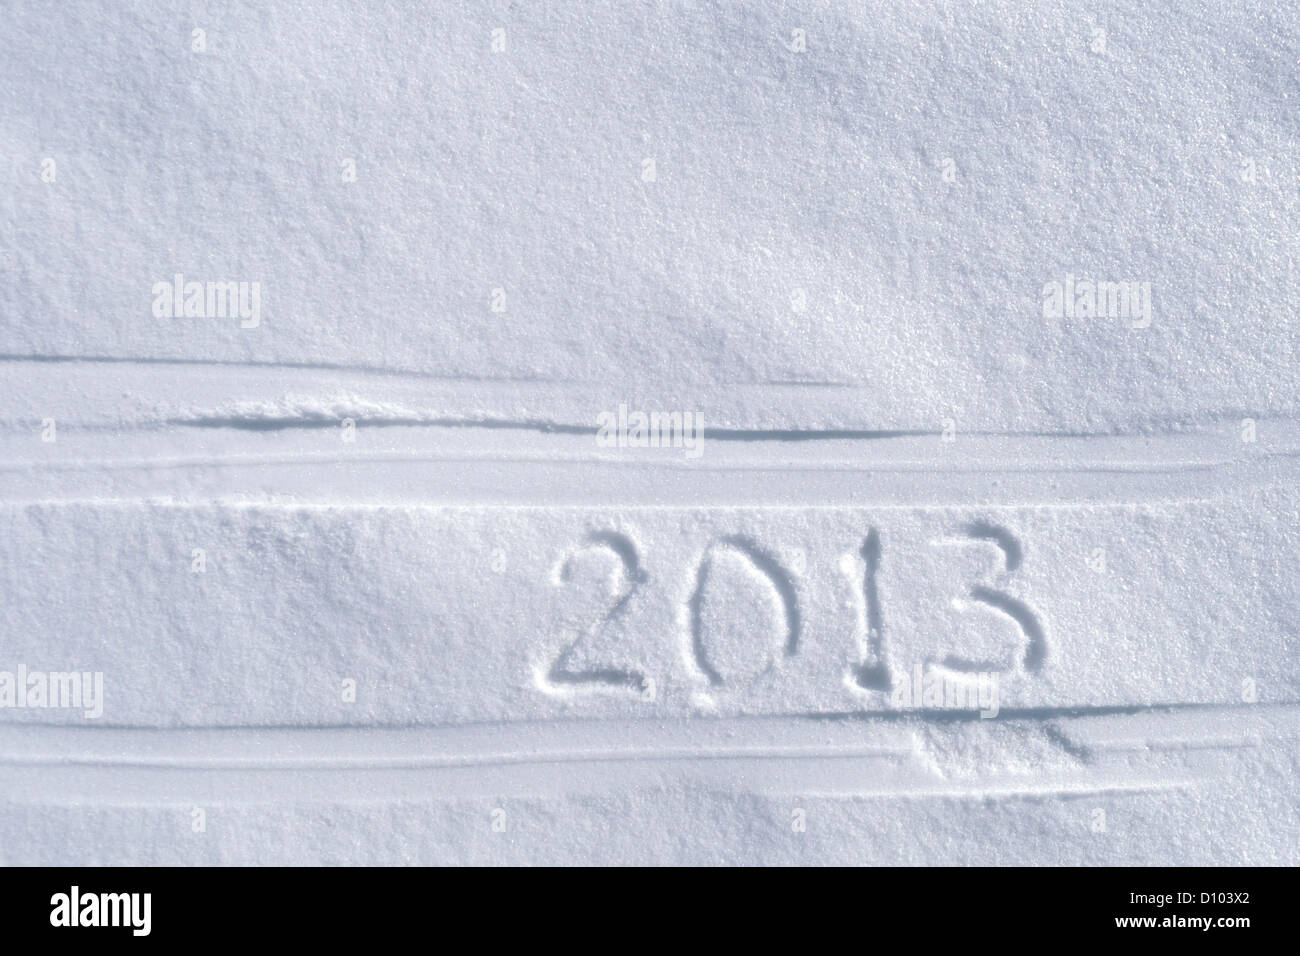 2013 text written between ski tracks - Stock Image